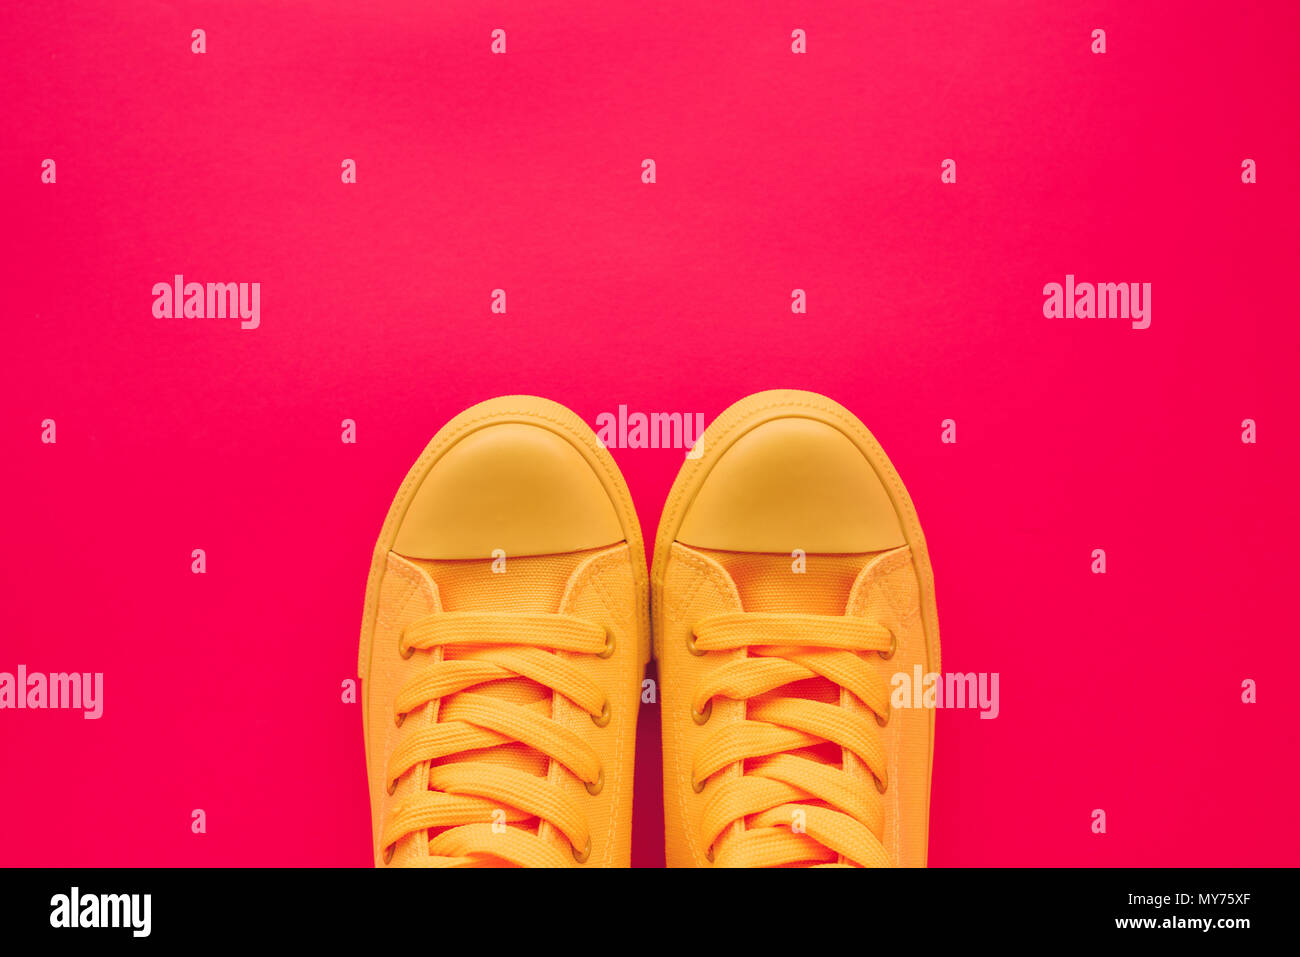 64fddd5333fc27 Yellow canvas shoes sneakers on neon pink background, top view with copy  space - Stock